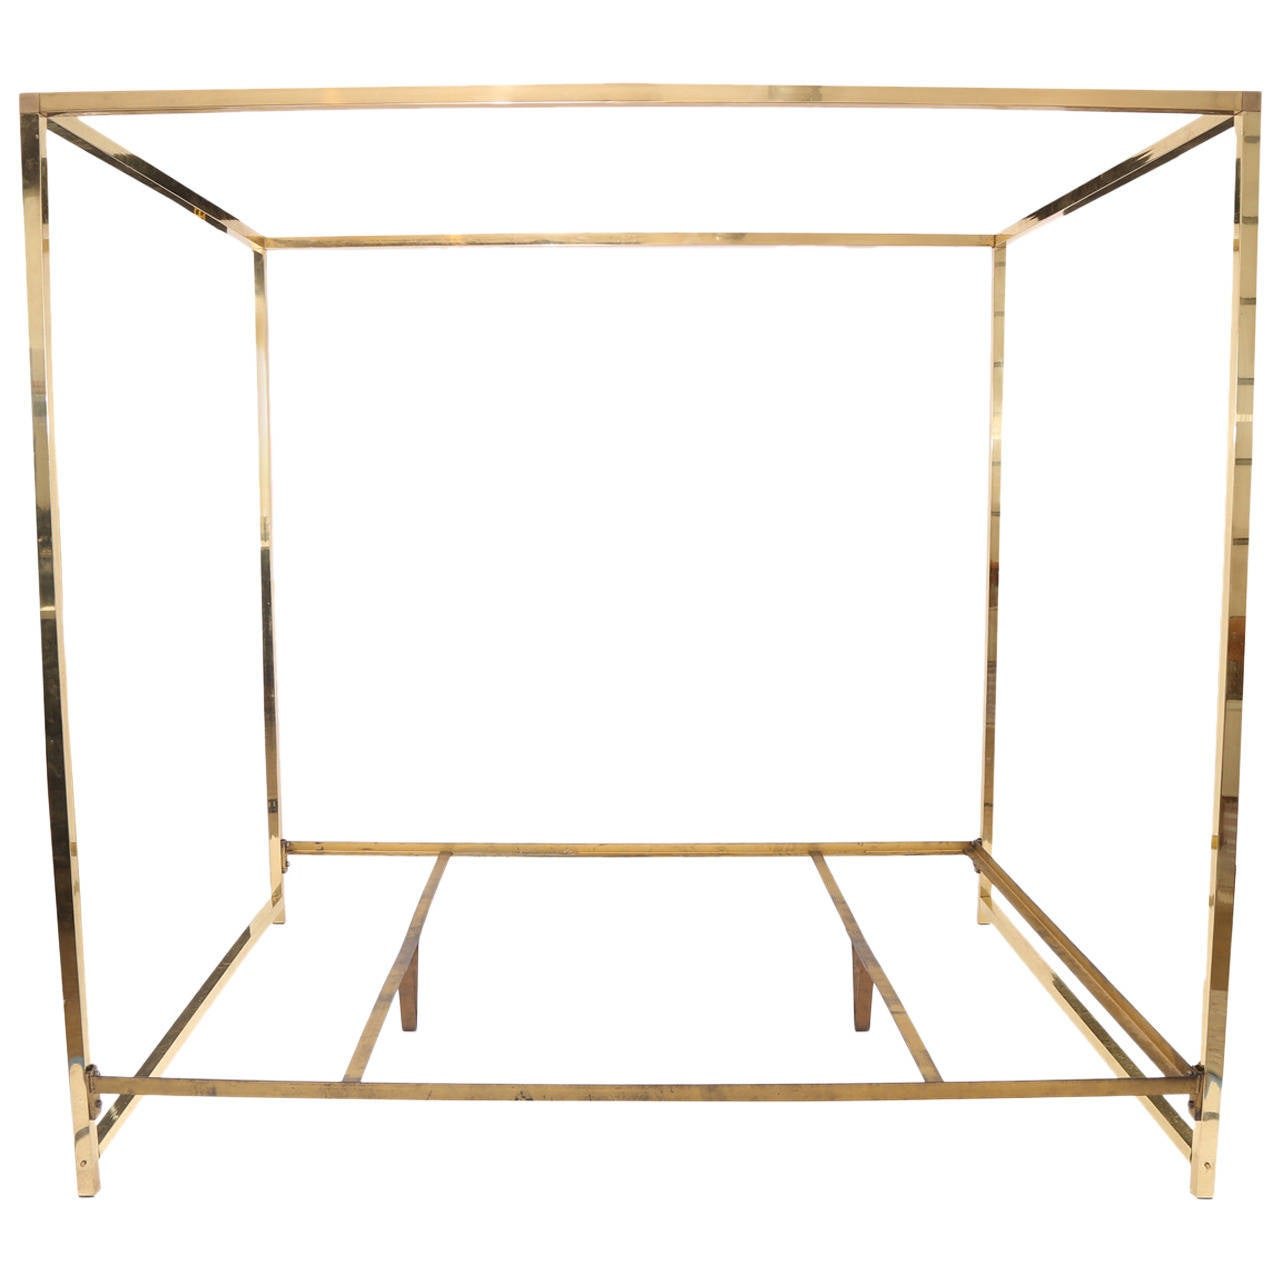 Fabulous Brass King Canopy Bed 1 - Fabulous Brass King Canopy Bed At 1stdibs